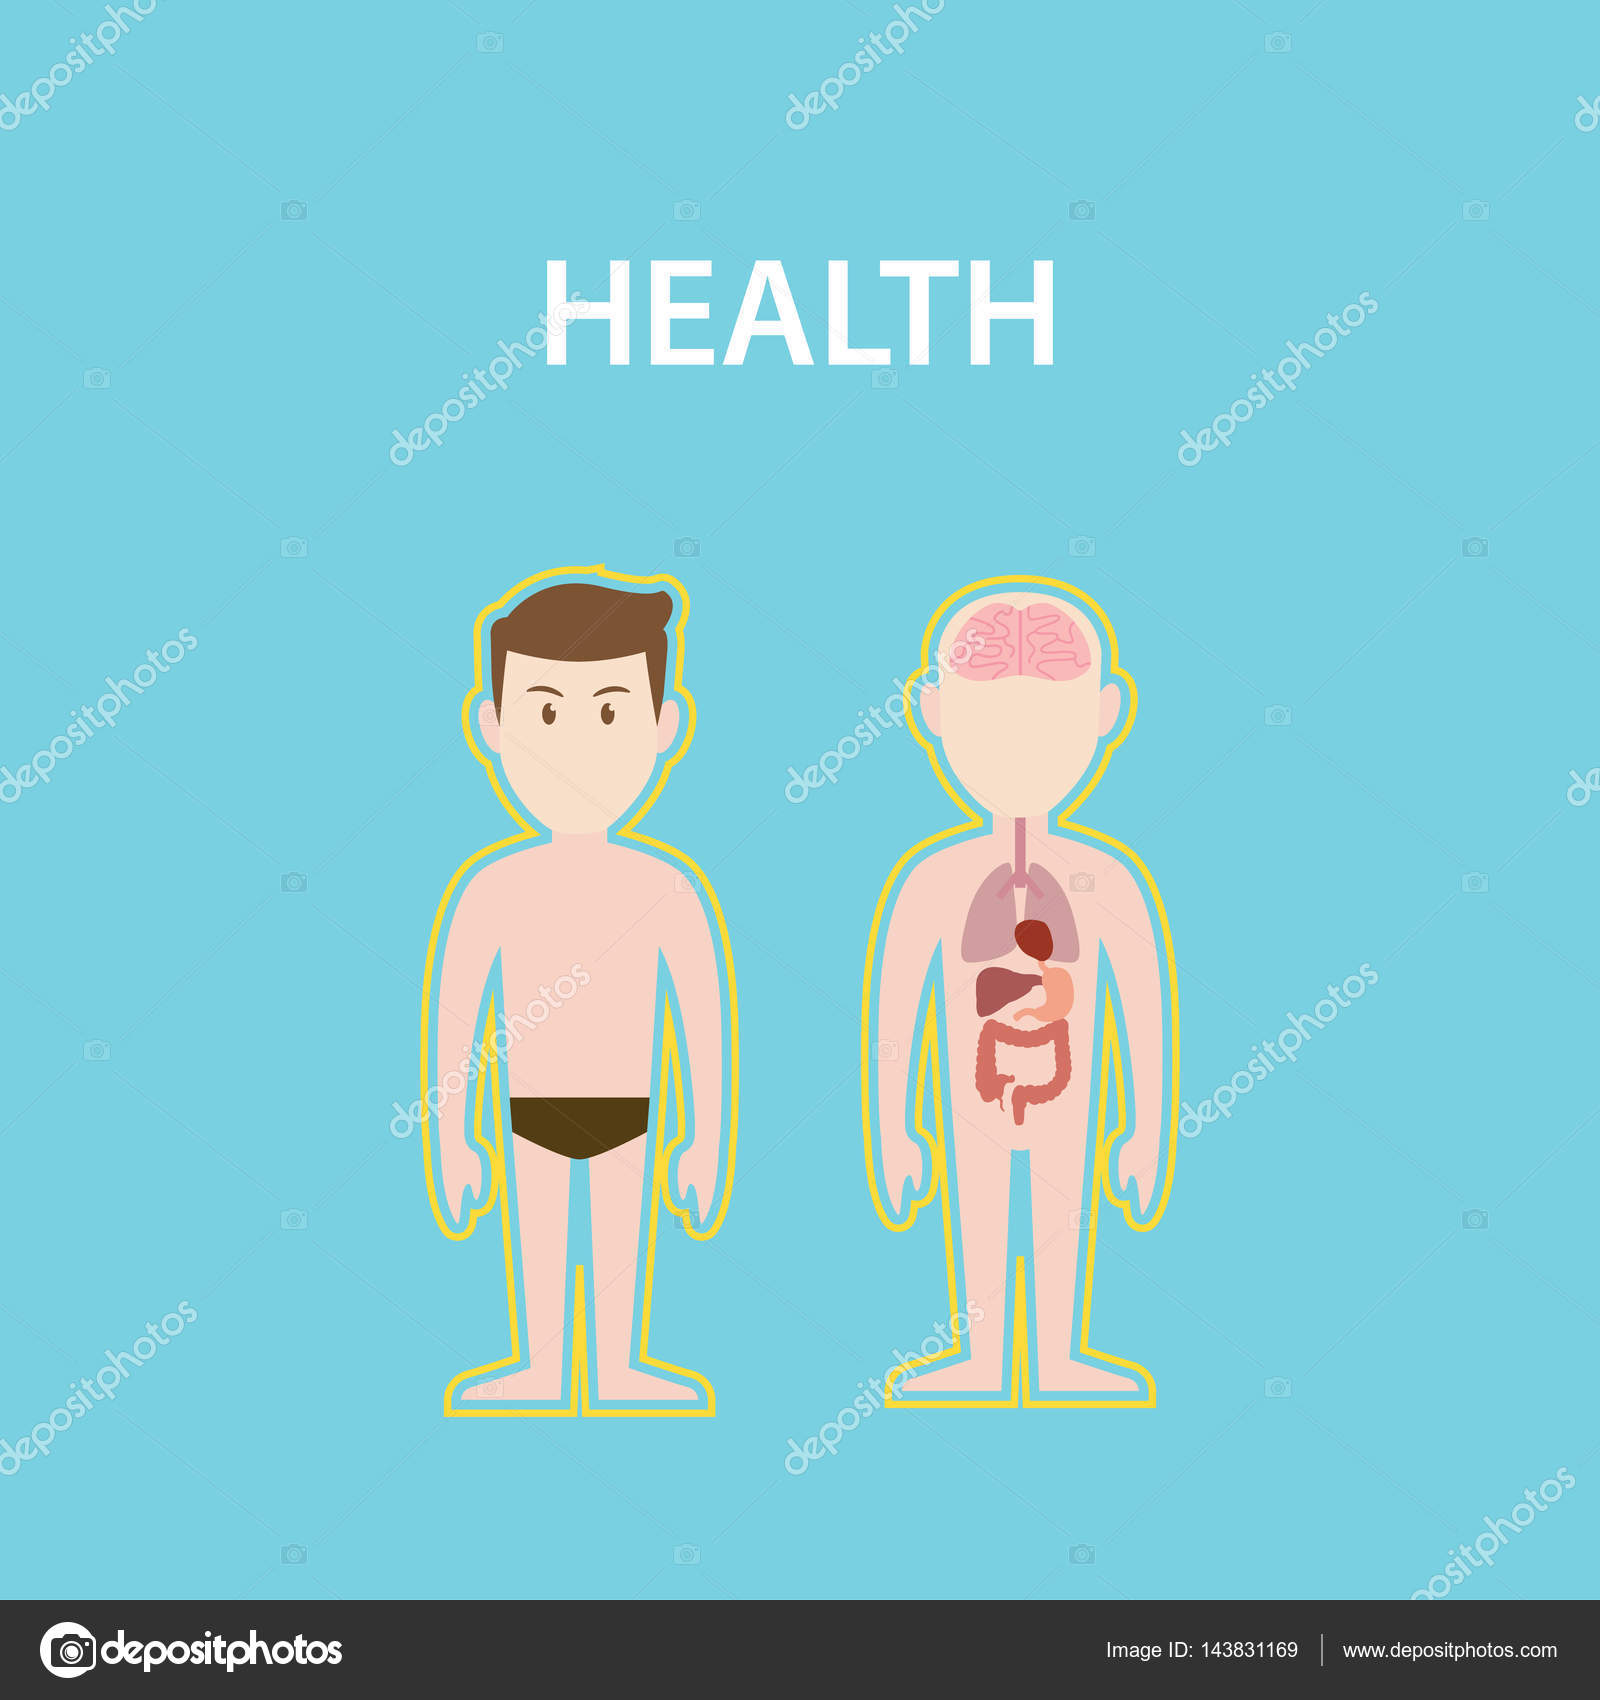 health white text illustration with two naked man bodies showing the ...